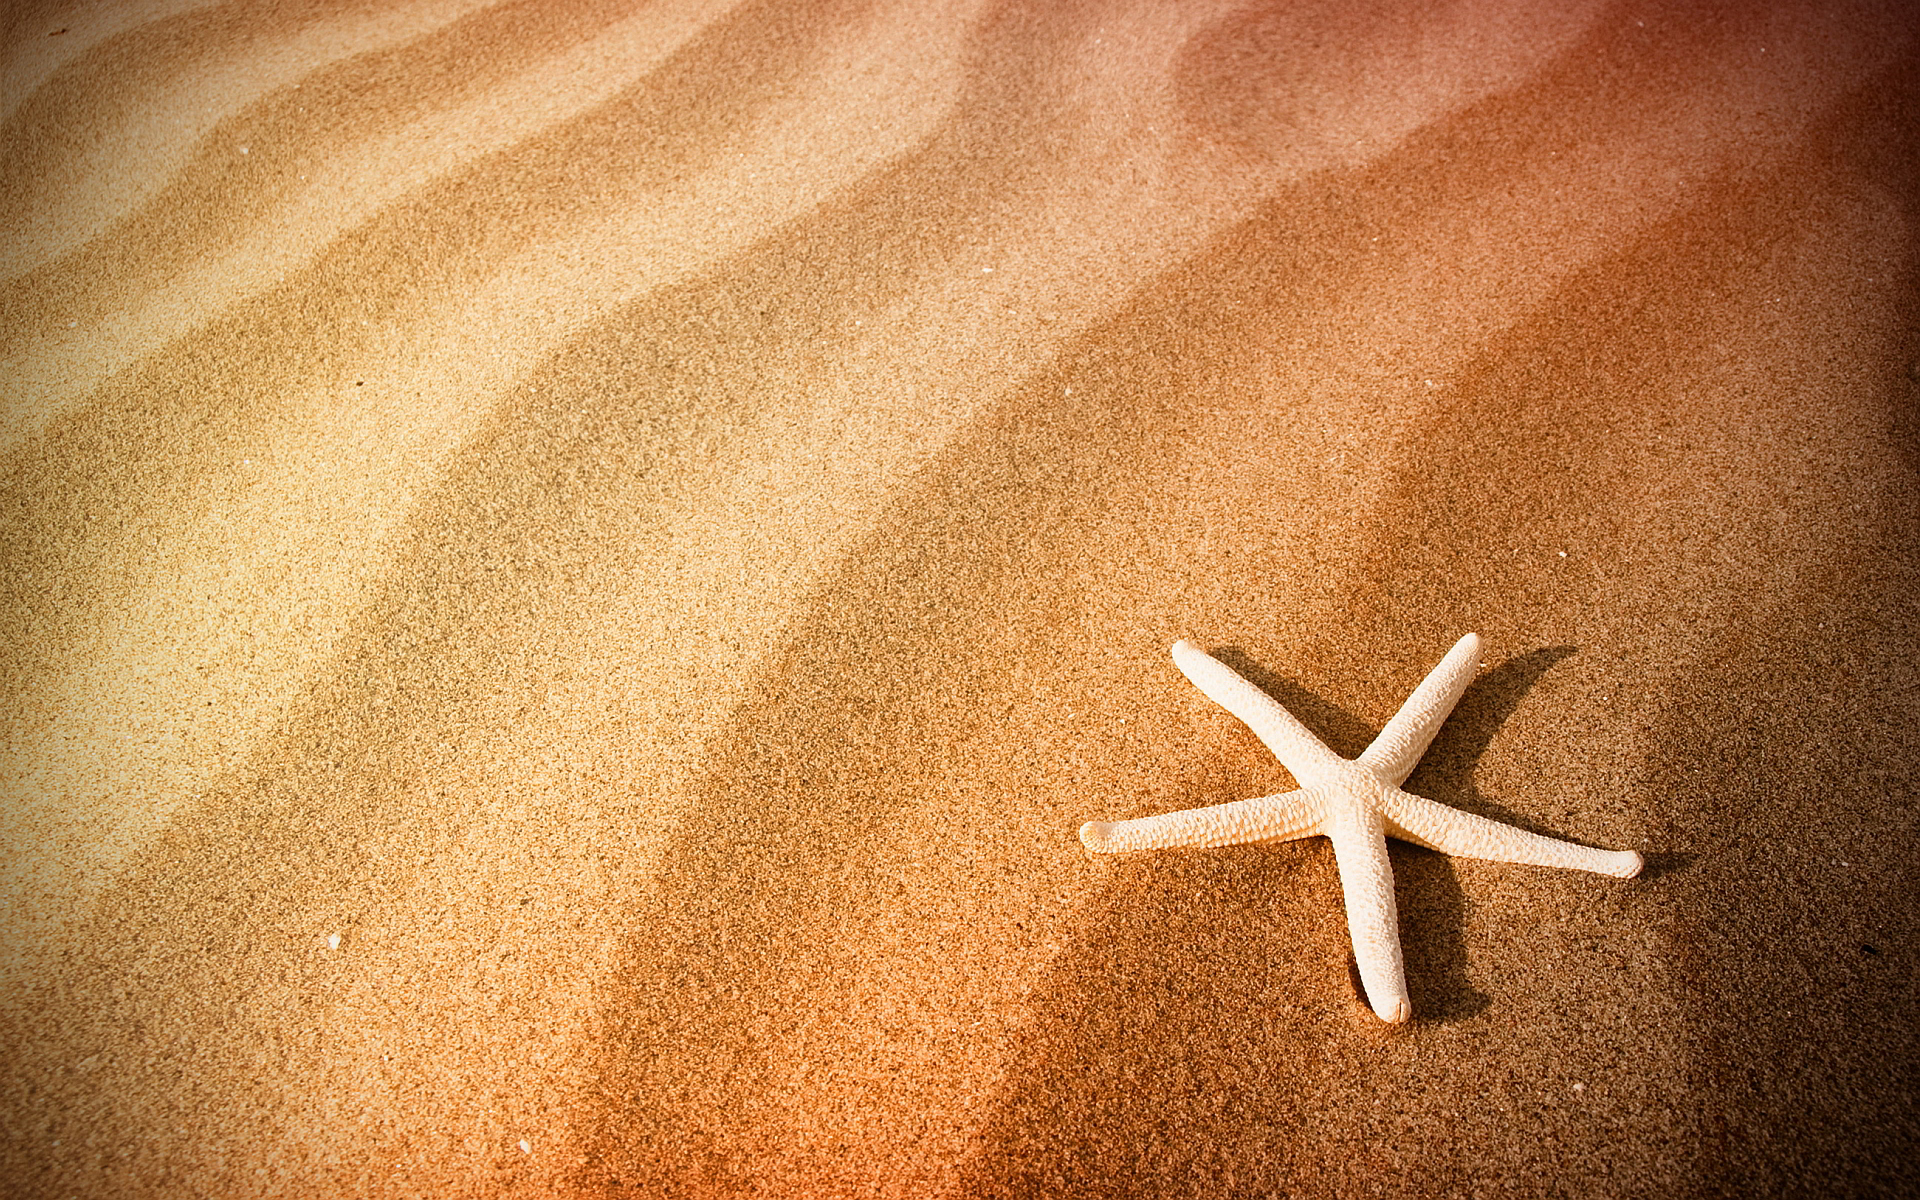 Sand Wallpaper Starfish Hd Desktop Wallpapers 4k Hd